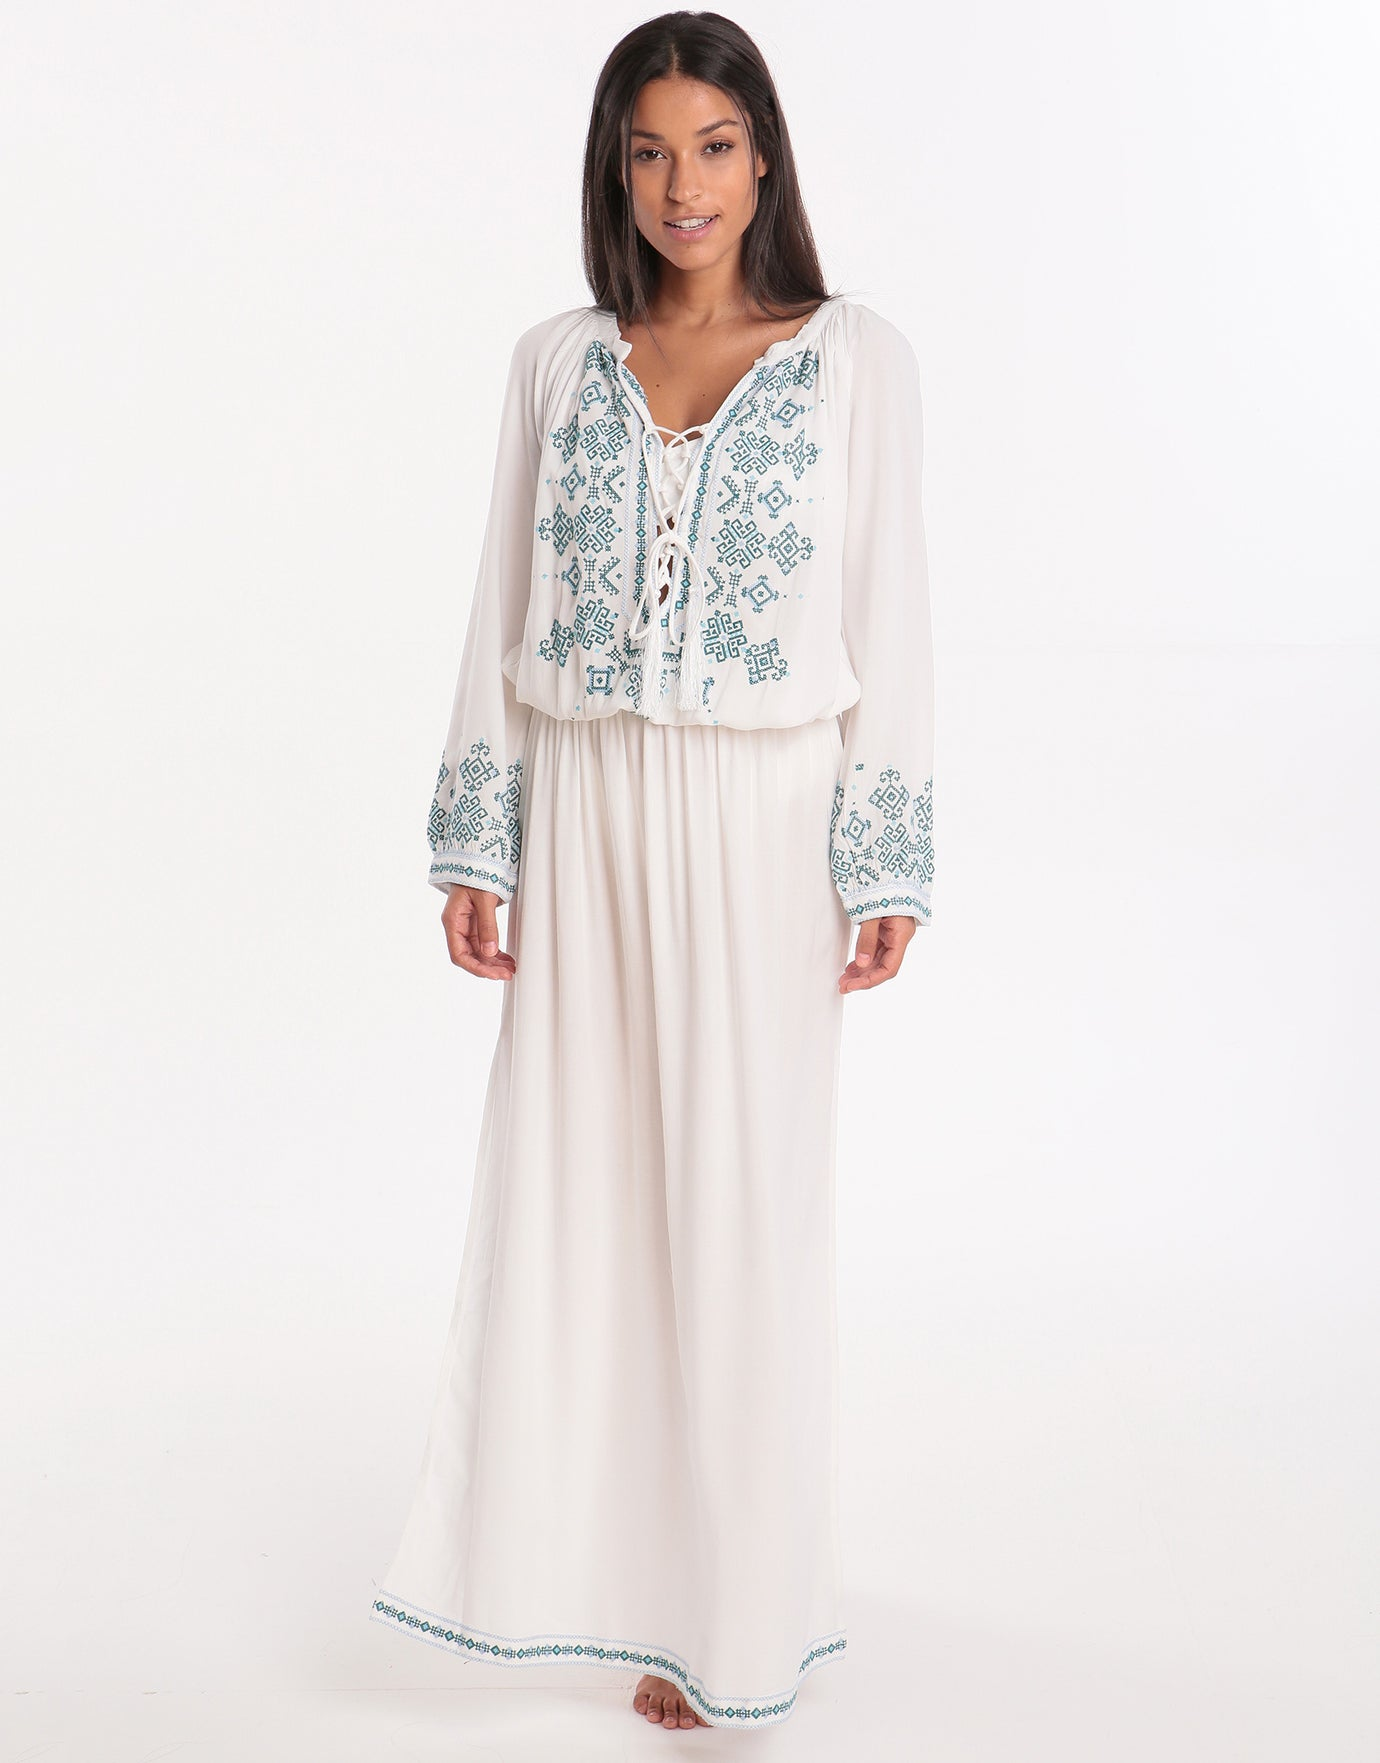 Melissa Odabash Sienna Embroidered Maxi Dress - White/Green